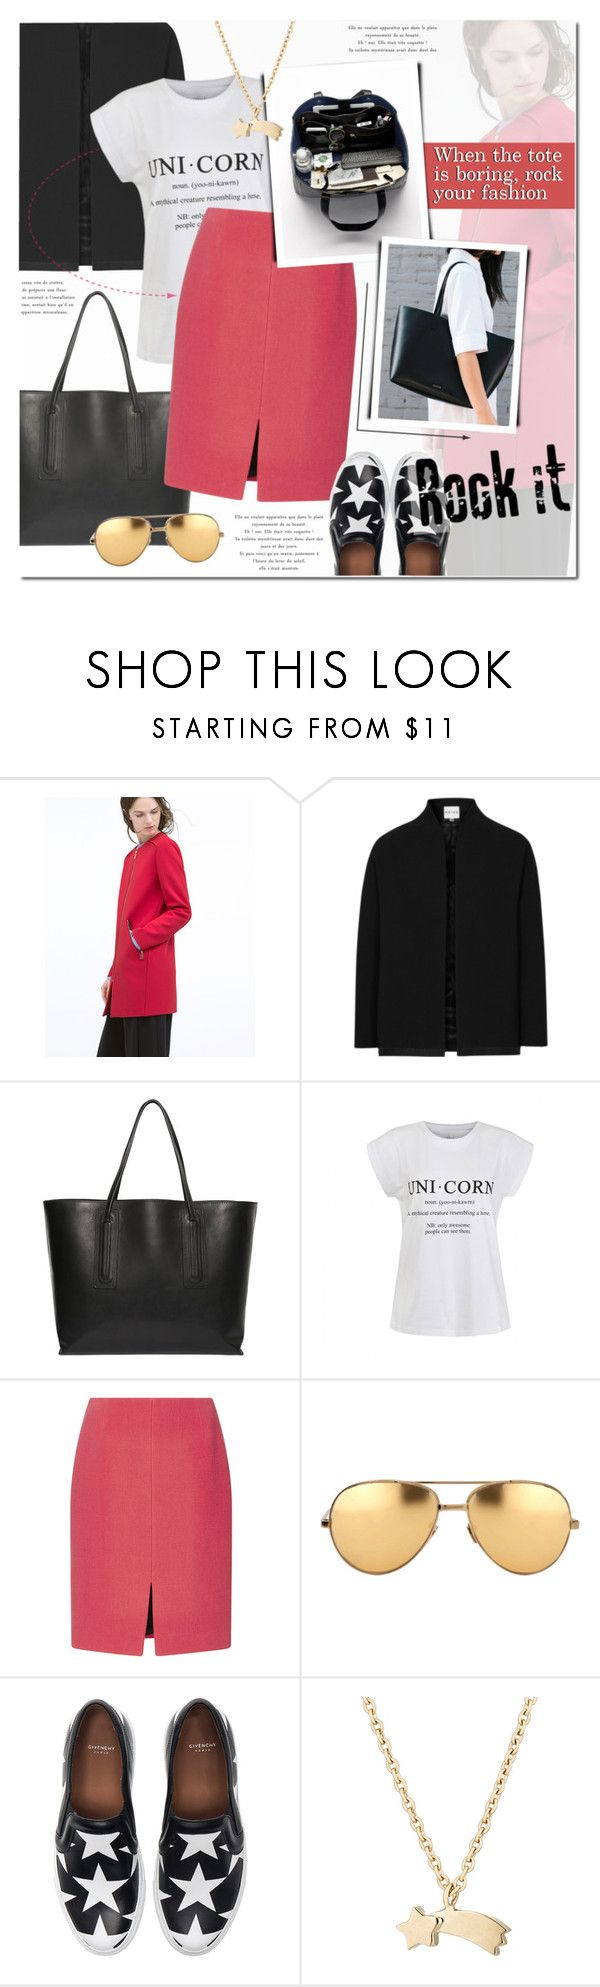 """""""Tote Bags"""" by anna-anica ❤ liked on Polyvore featuring Zara, Reiss, Rick Owens, Ally Fashion, Sonia Rykiel, Linda Farrow, Givenchy, Minor Obsessions, women's clothing and women"""